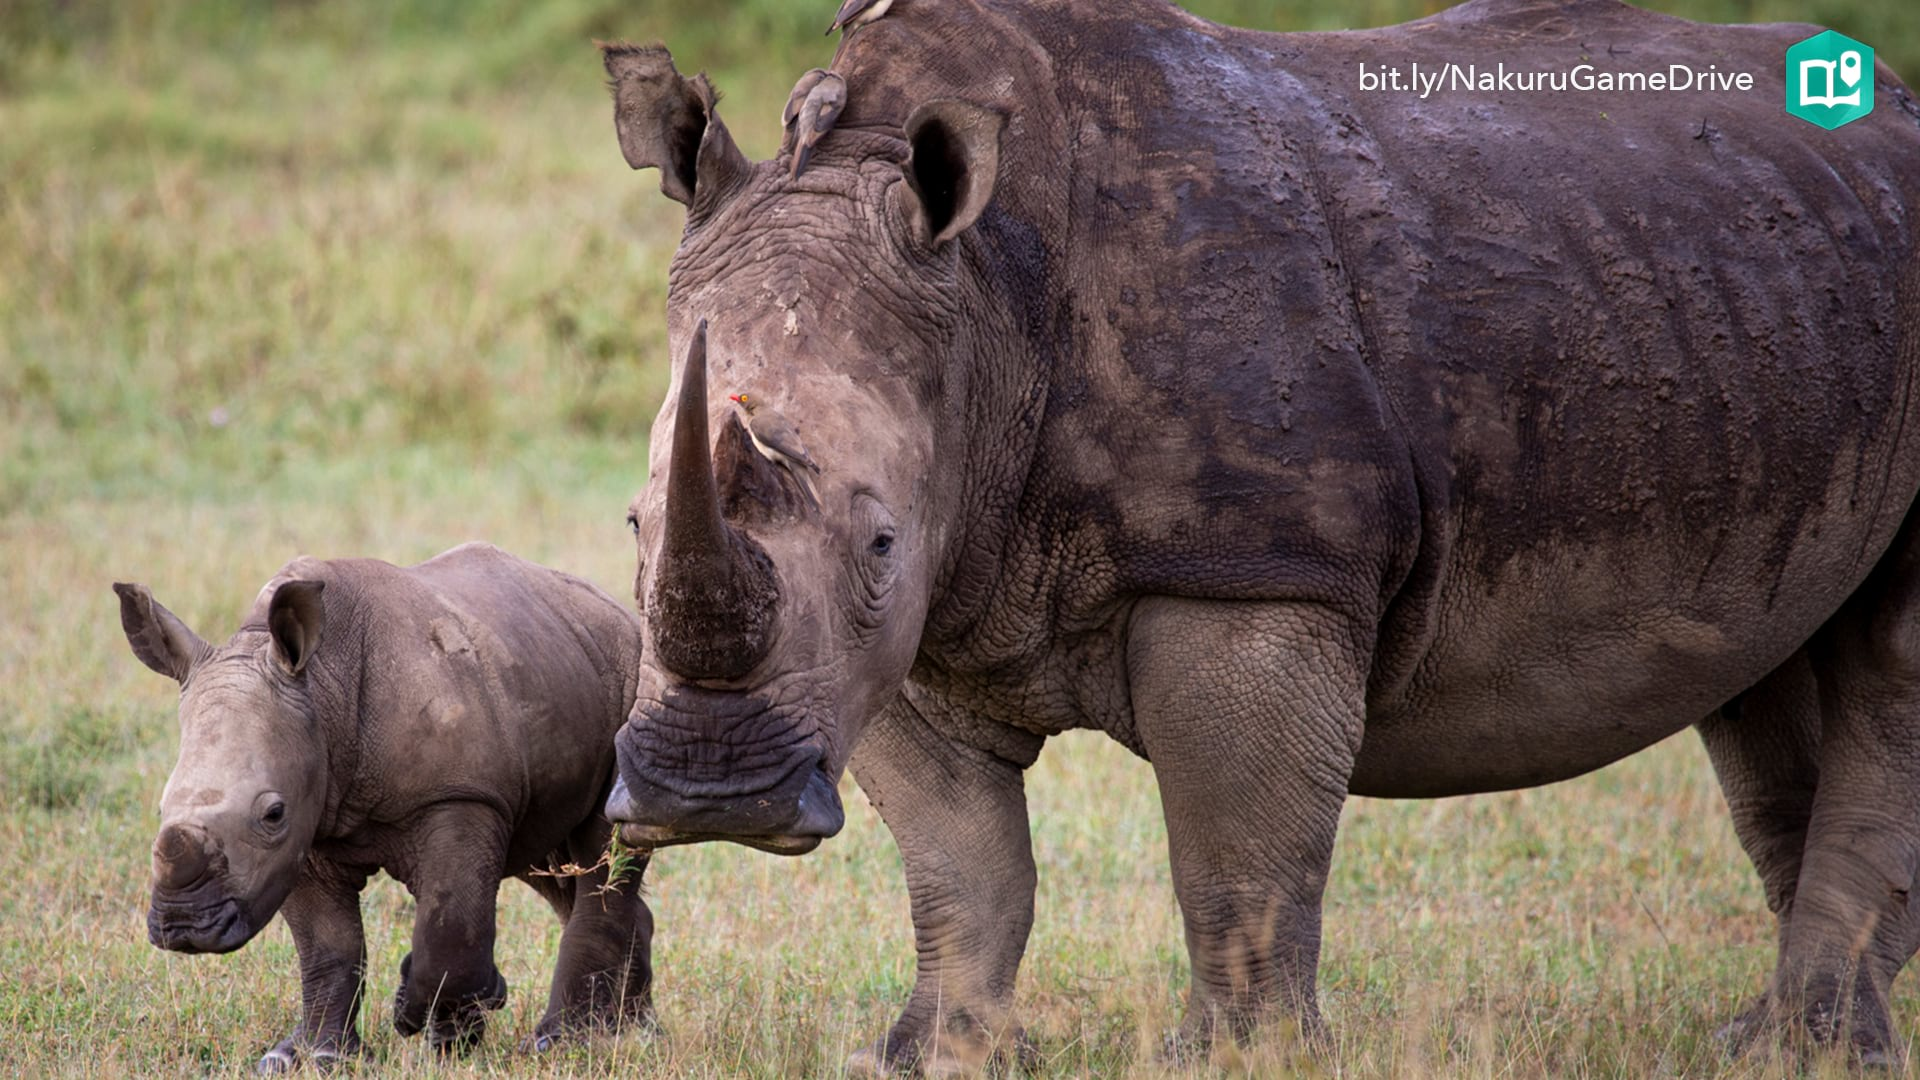 A large white rhino stands guard over a year old baby born in Lake Nakuru National Park in Kenya.